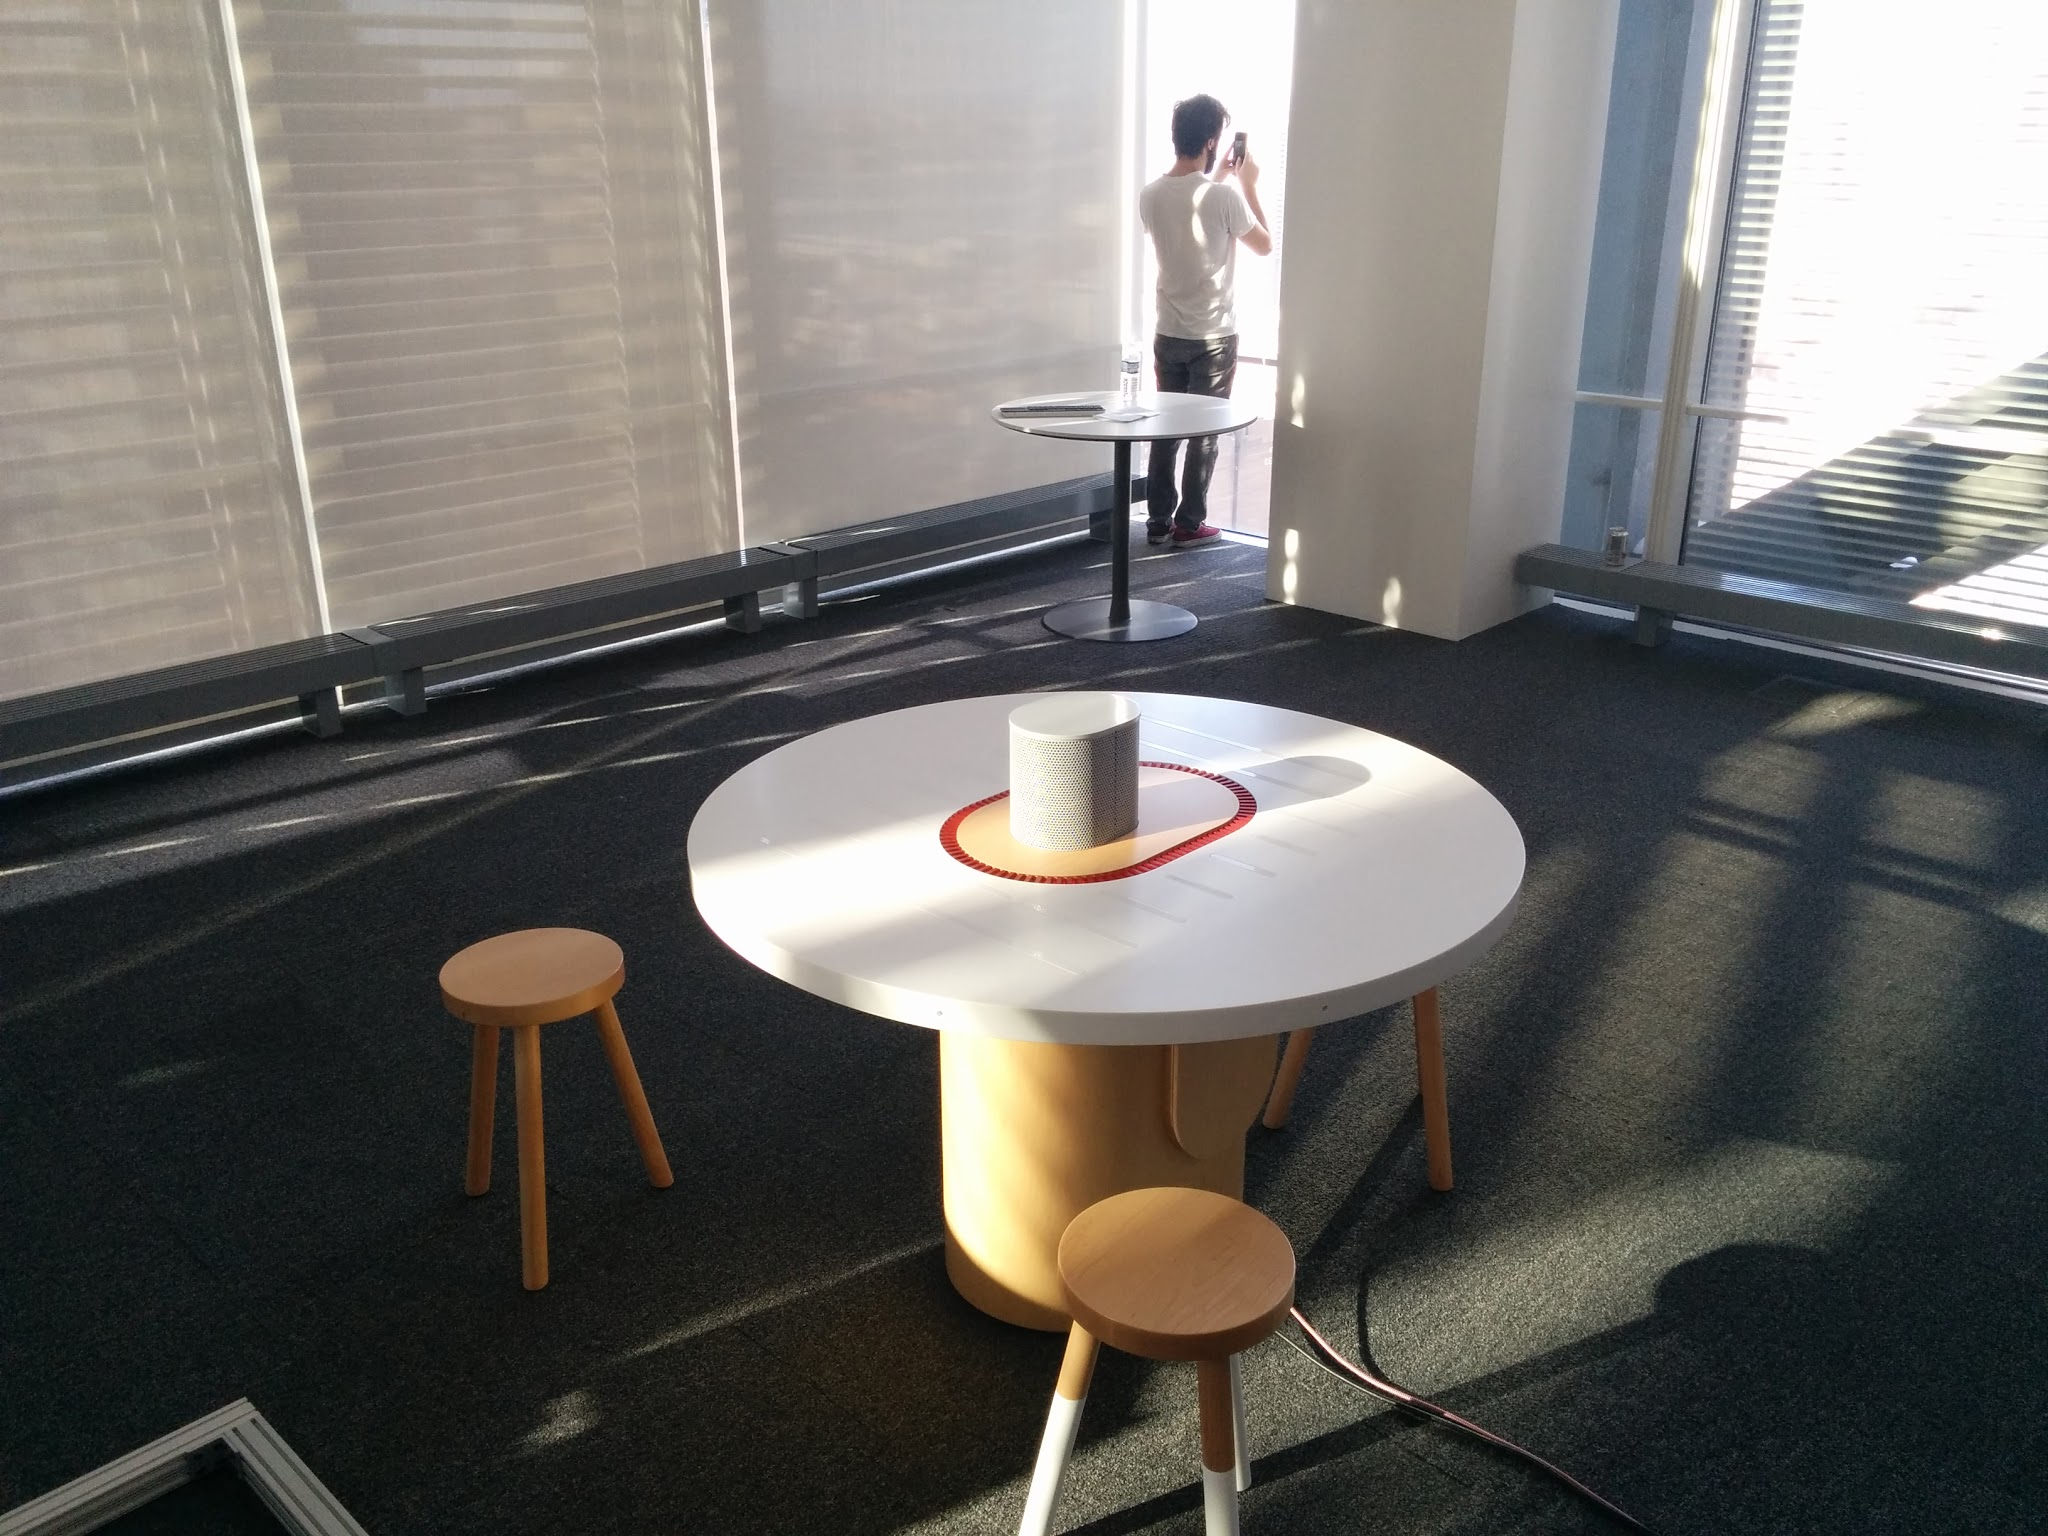 Listening Table deployed at nytlabs